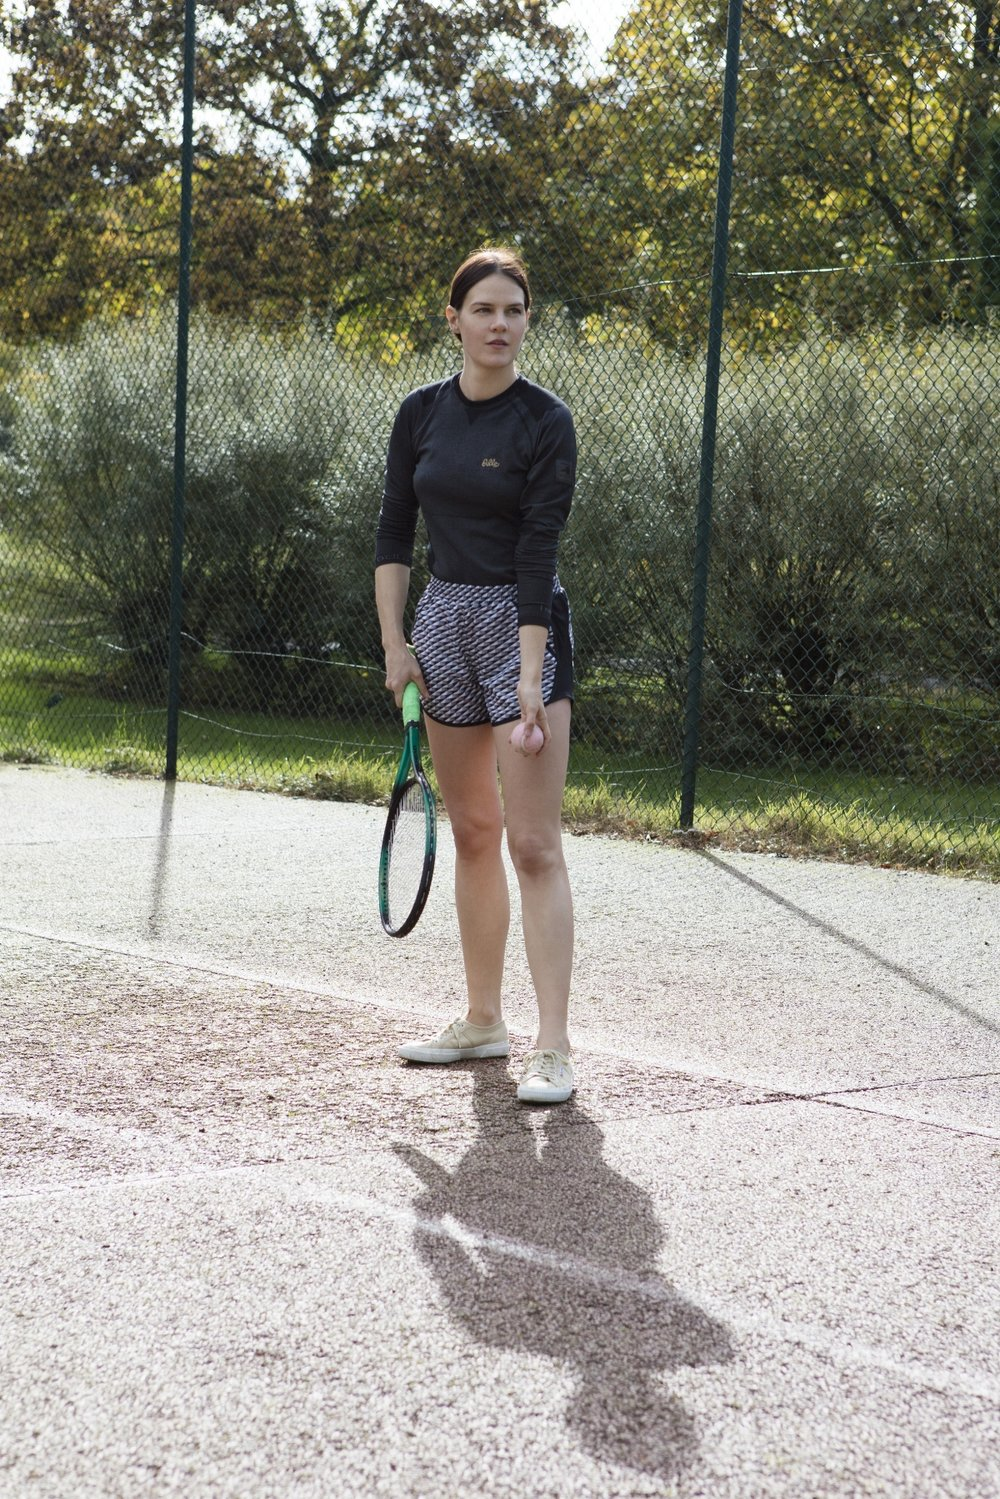 Top: Odlo. Shorts: Under Armour. Shoes: Superga.   All Images by  Corinne Stoll .